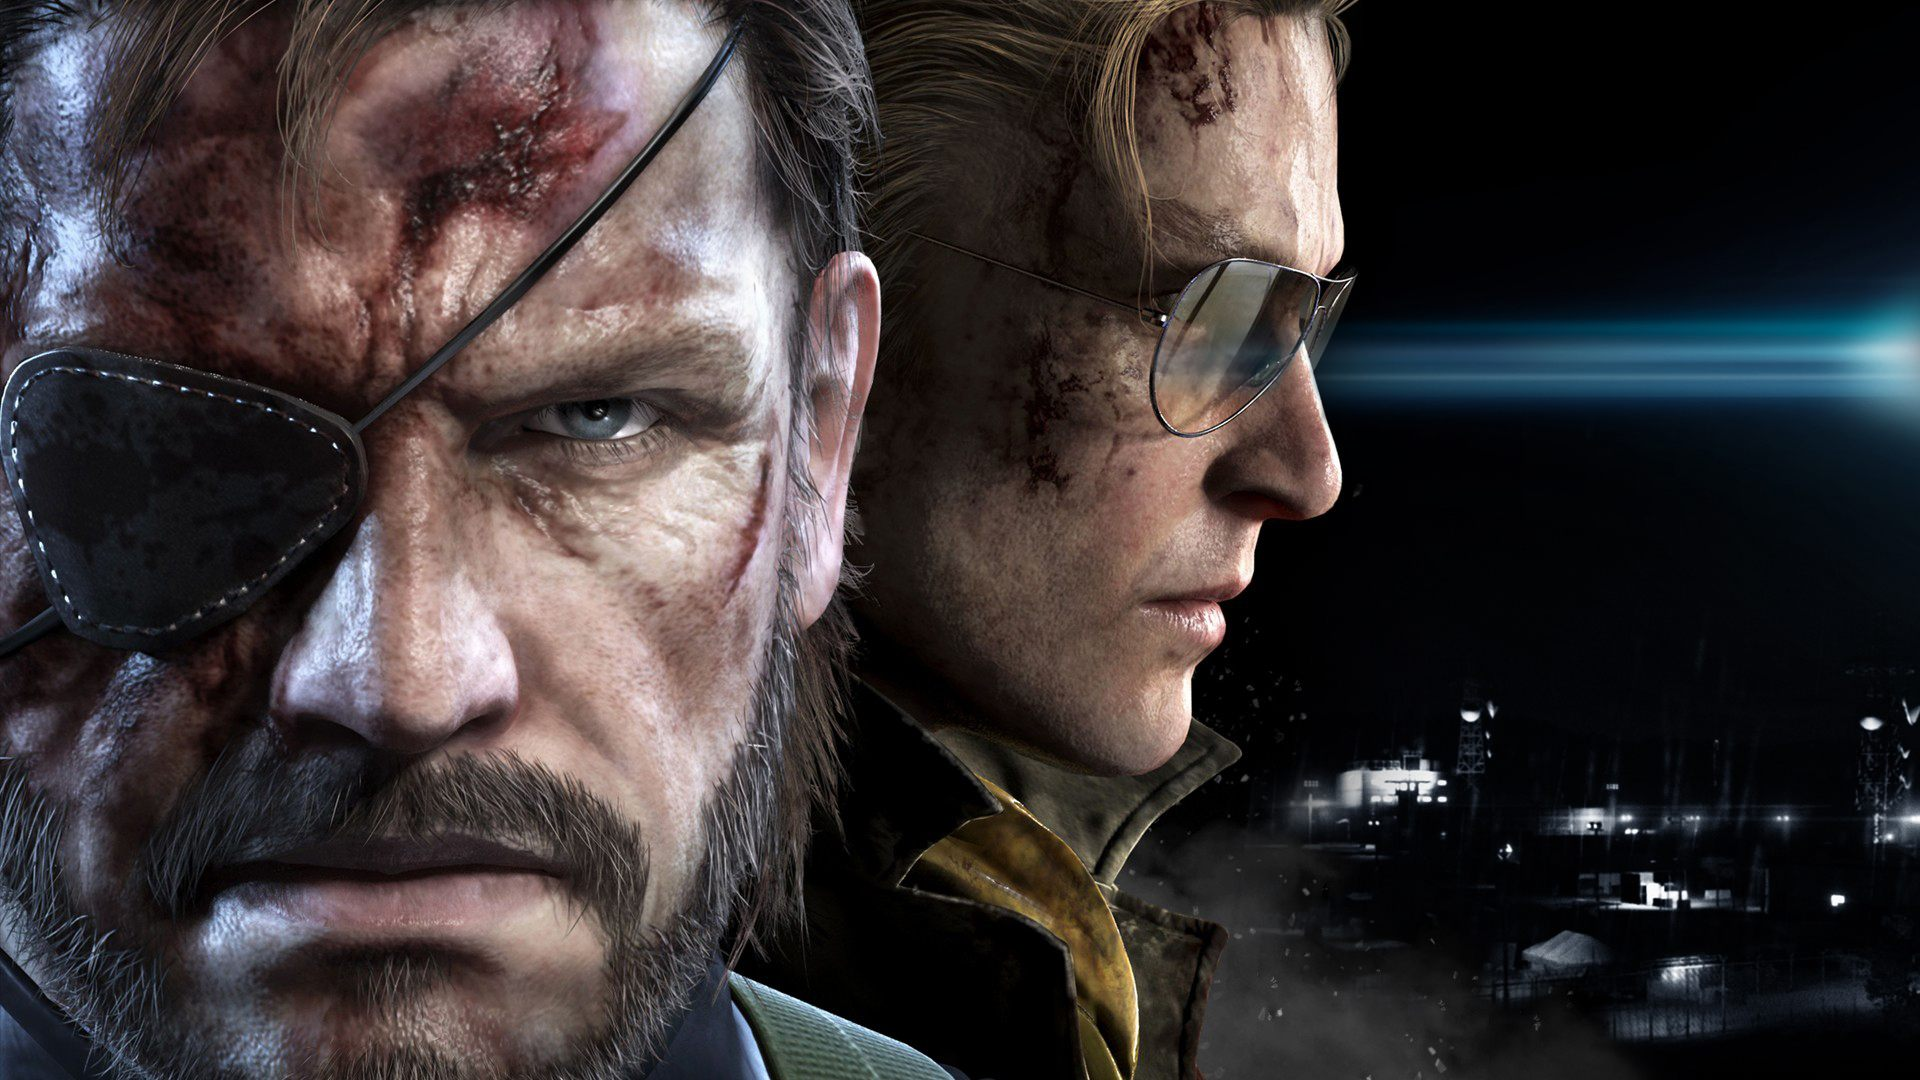 Metal Gear Solid V: The Phantom Pain HD pictures